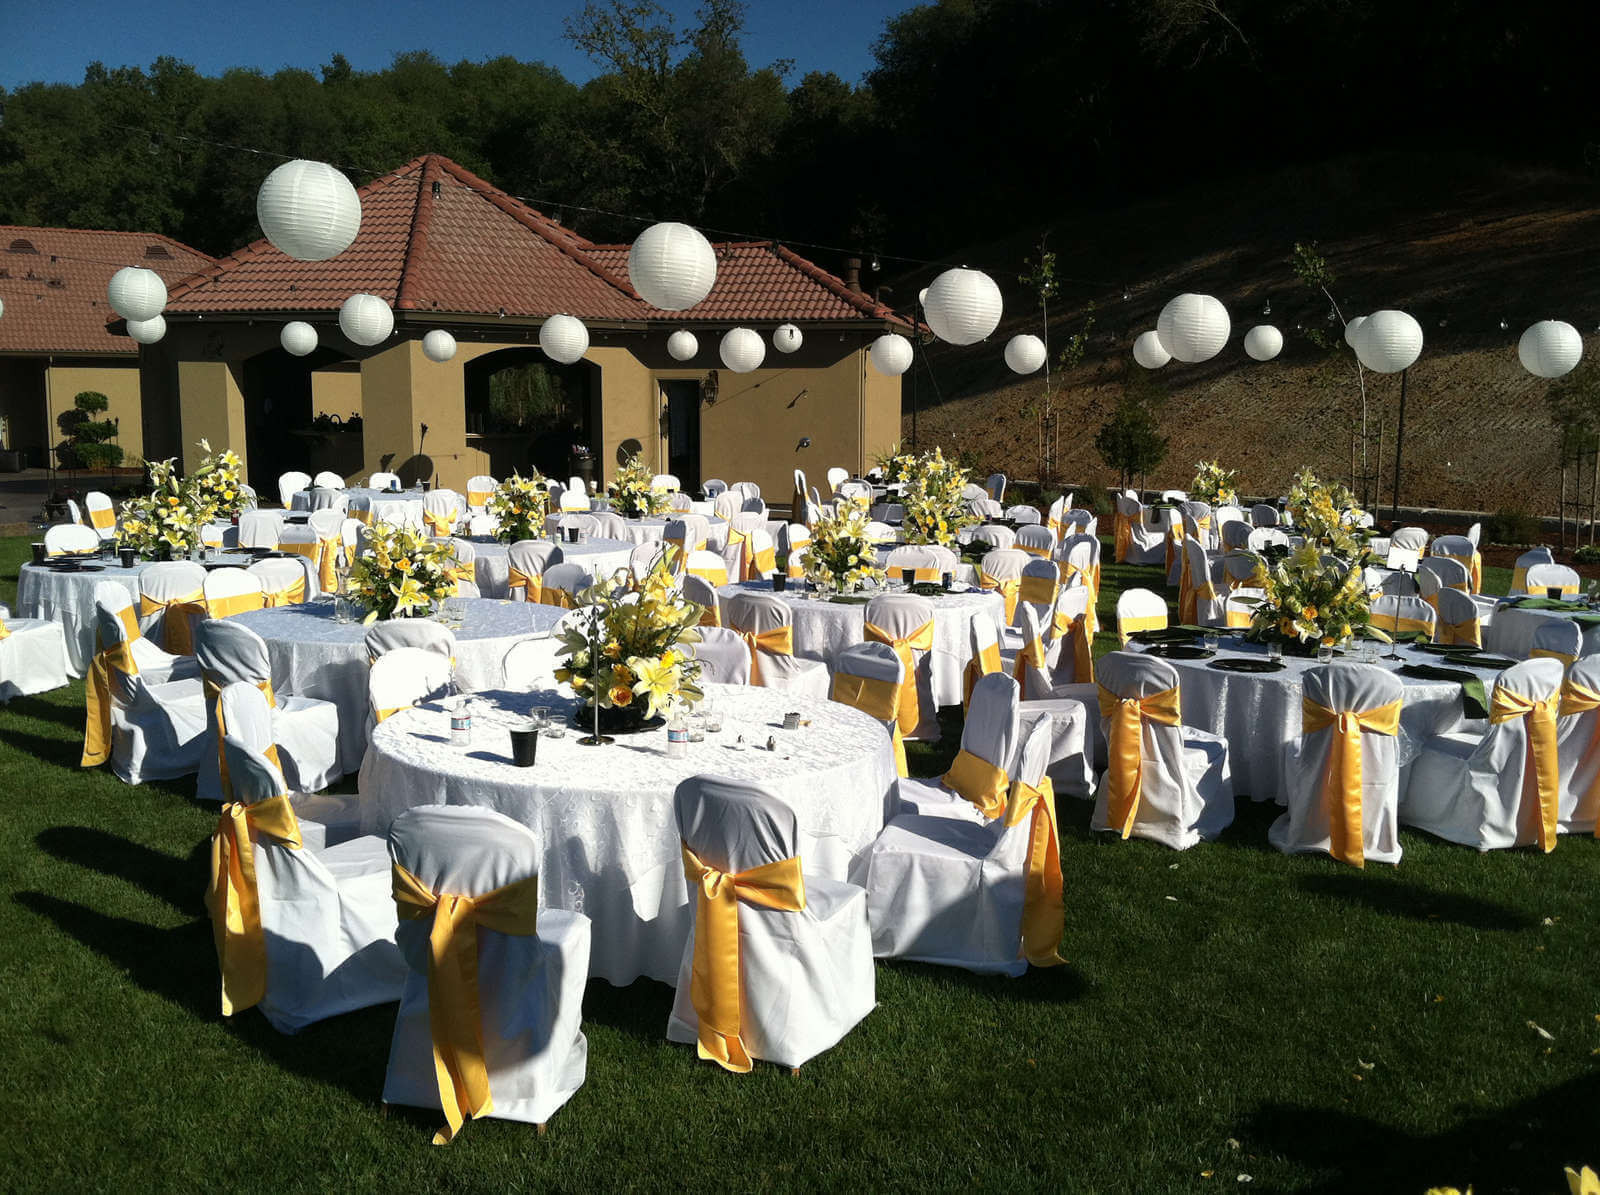 Best ideas about Outdoor Wedding Decorations . Save or Pin This Weeks √ 14 Elegant Outdoor Wedding Decorations Now.